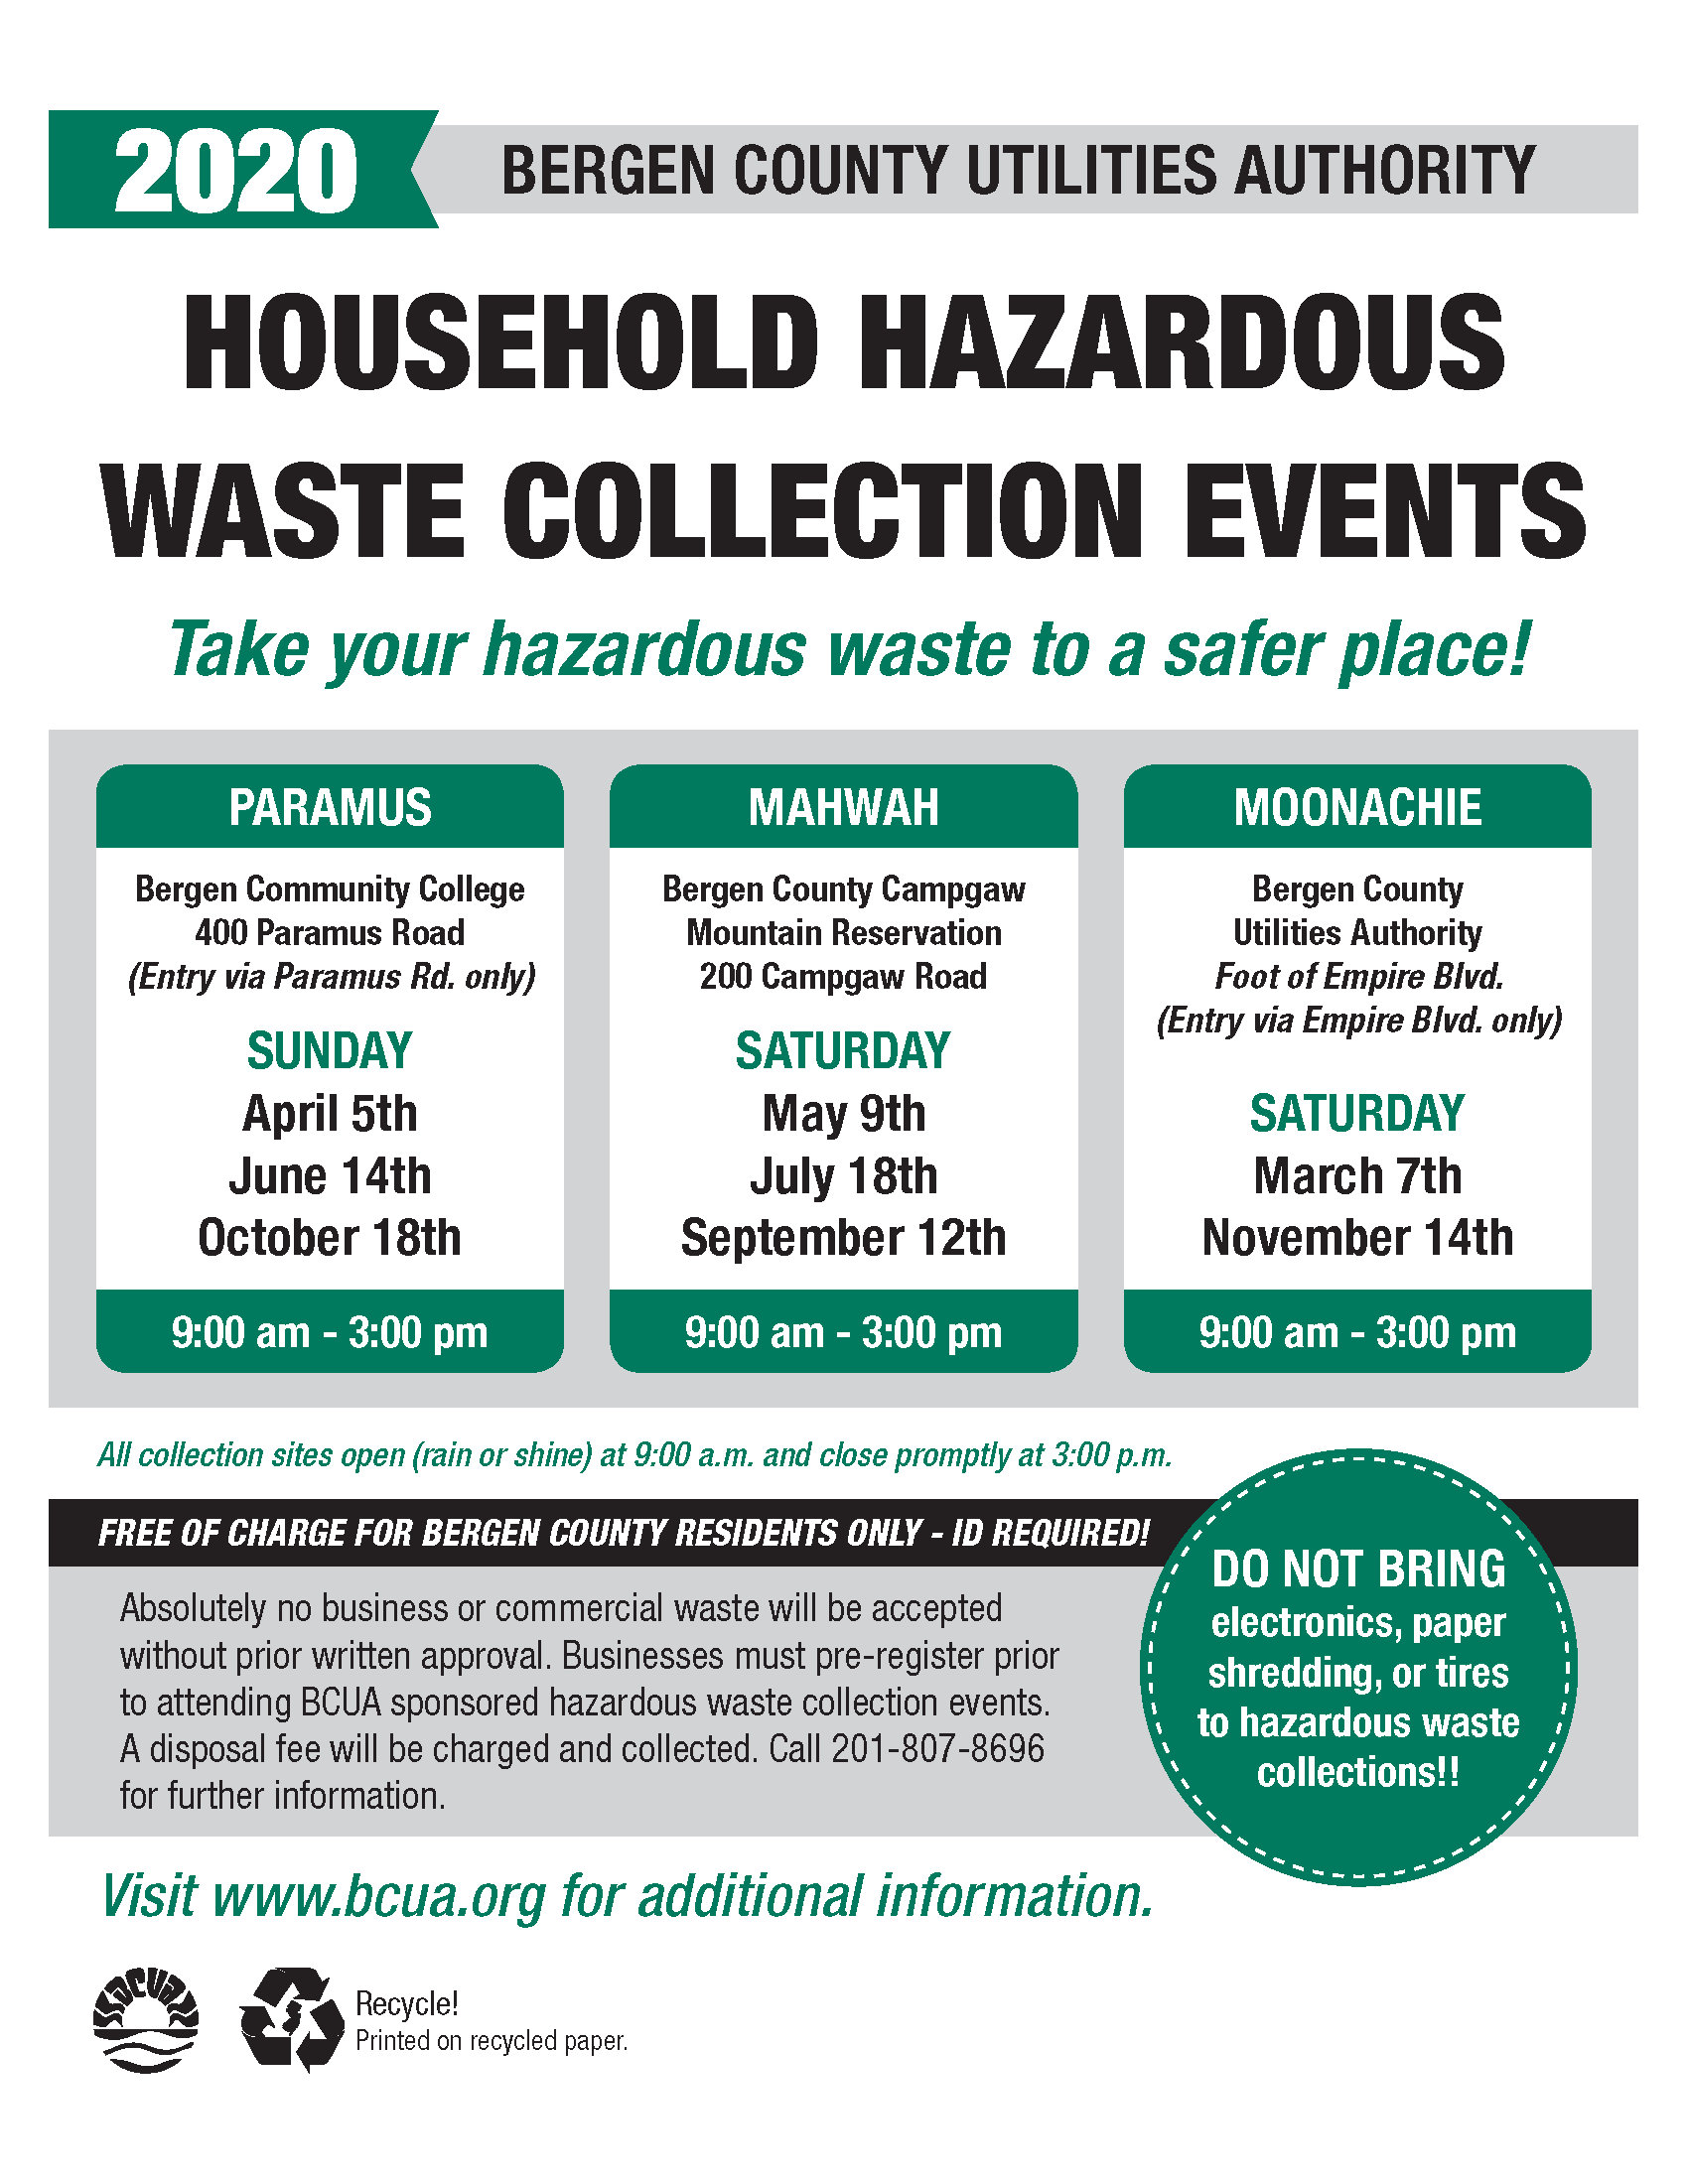 2020 Household Hazardous Waste Collection Dates_Page_1